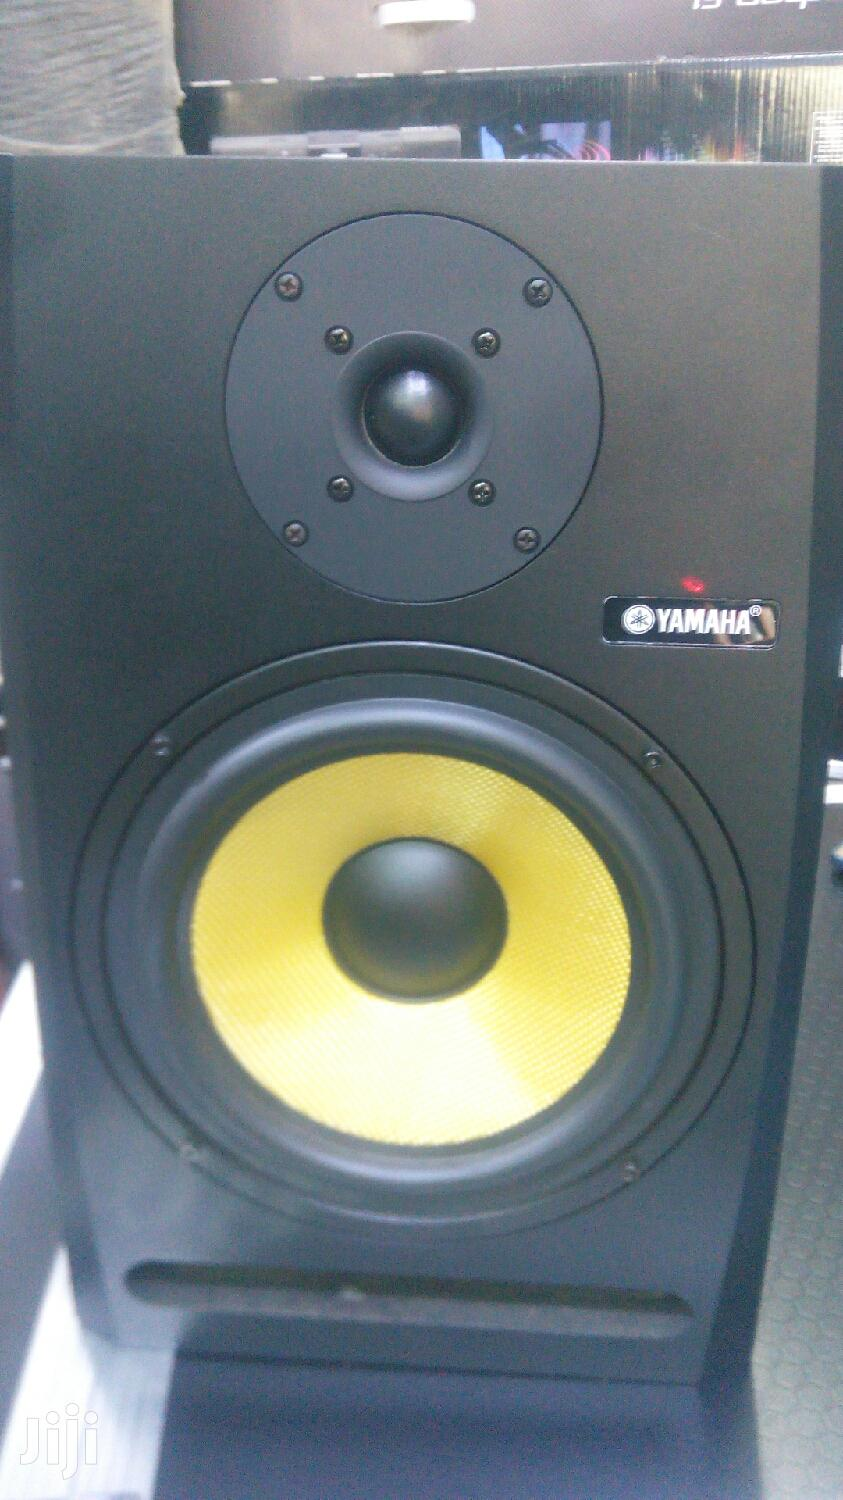 Studio Monitor Yamaha 8"